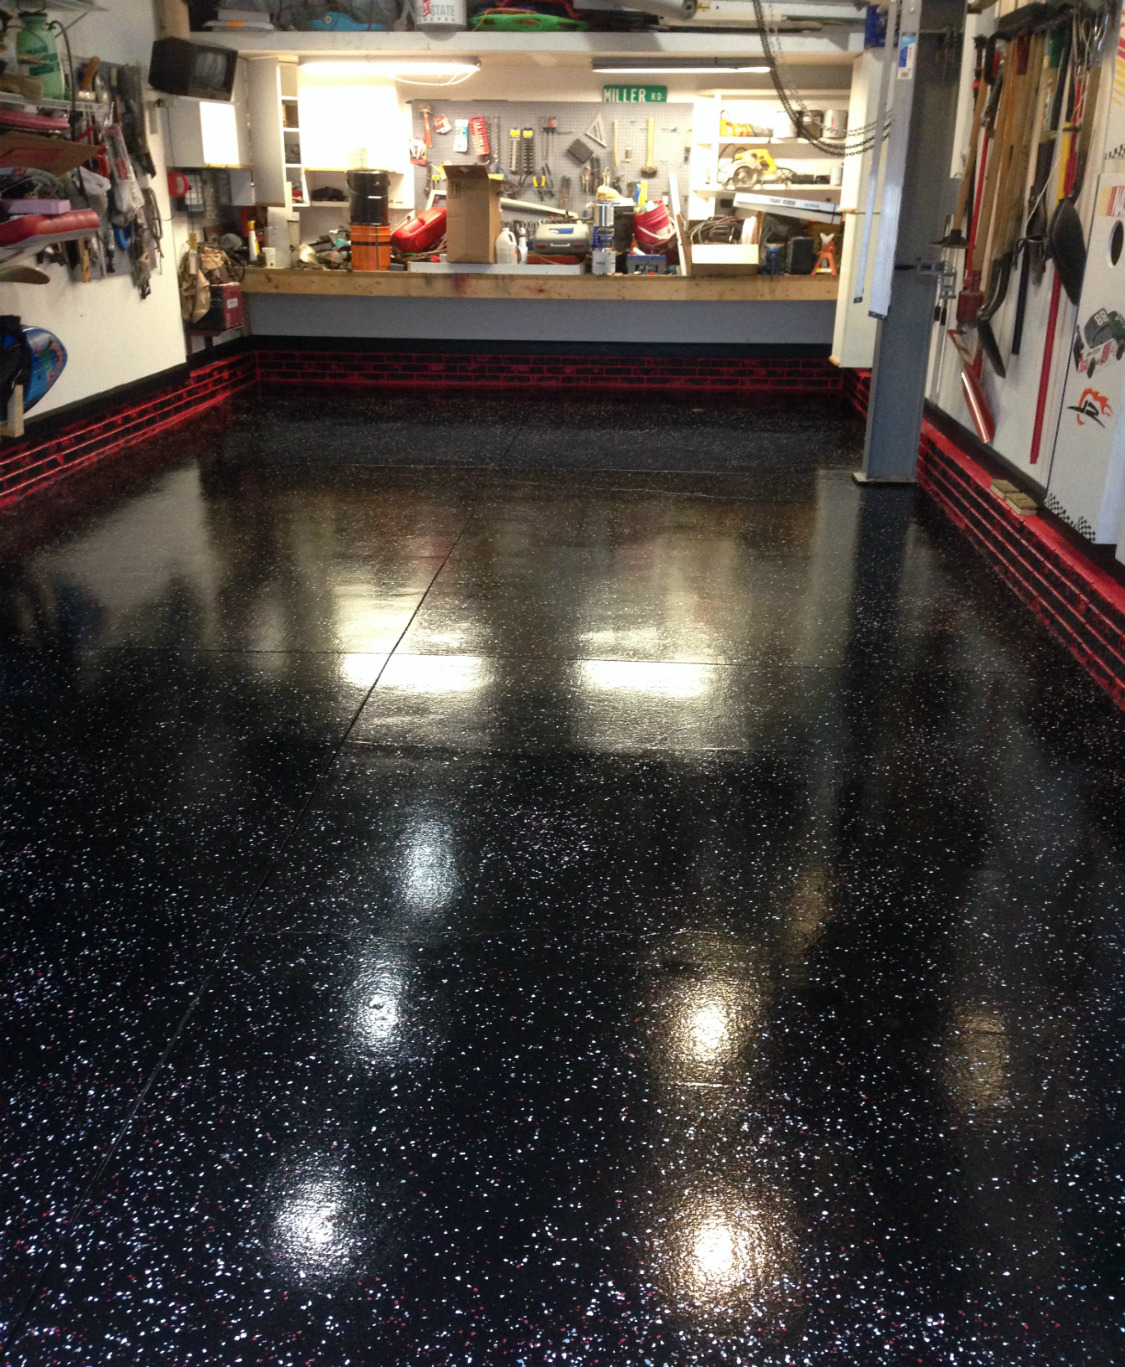 Garage Floor Epoxy Kits | Epoxy flooring coating and paint |ArmorGarage